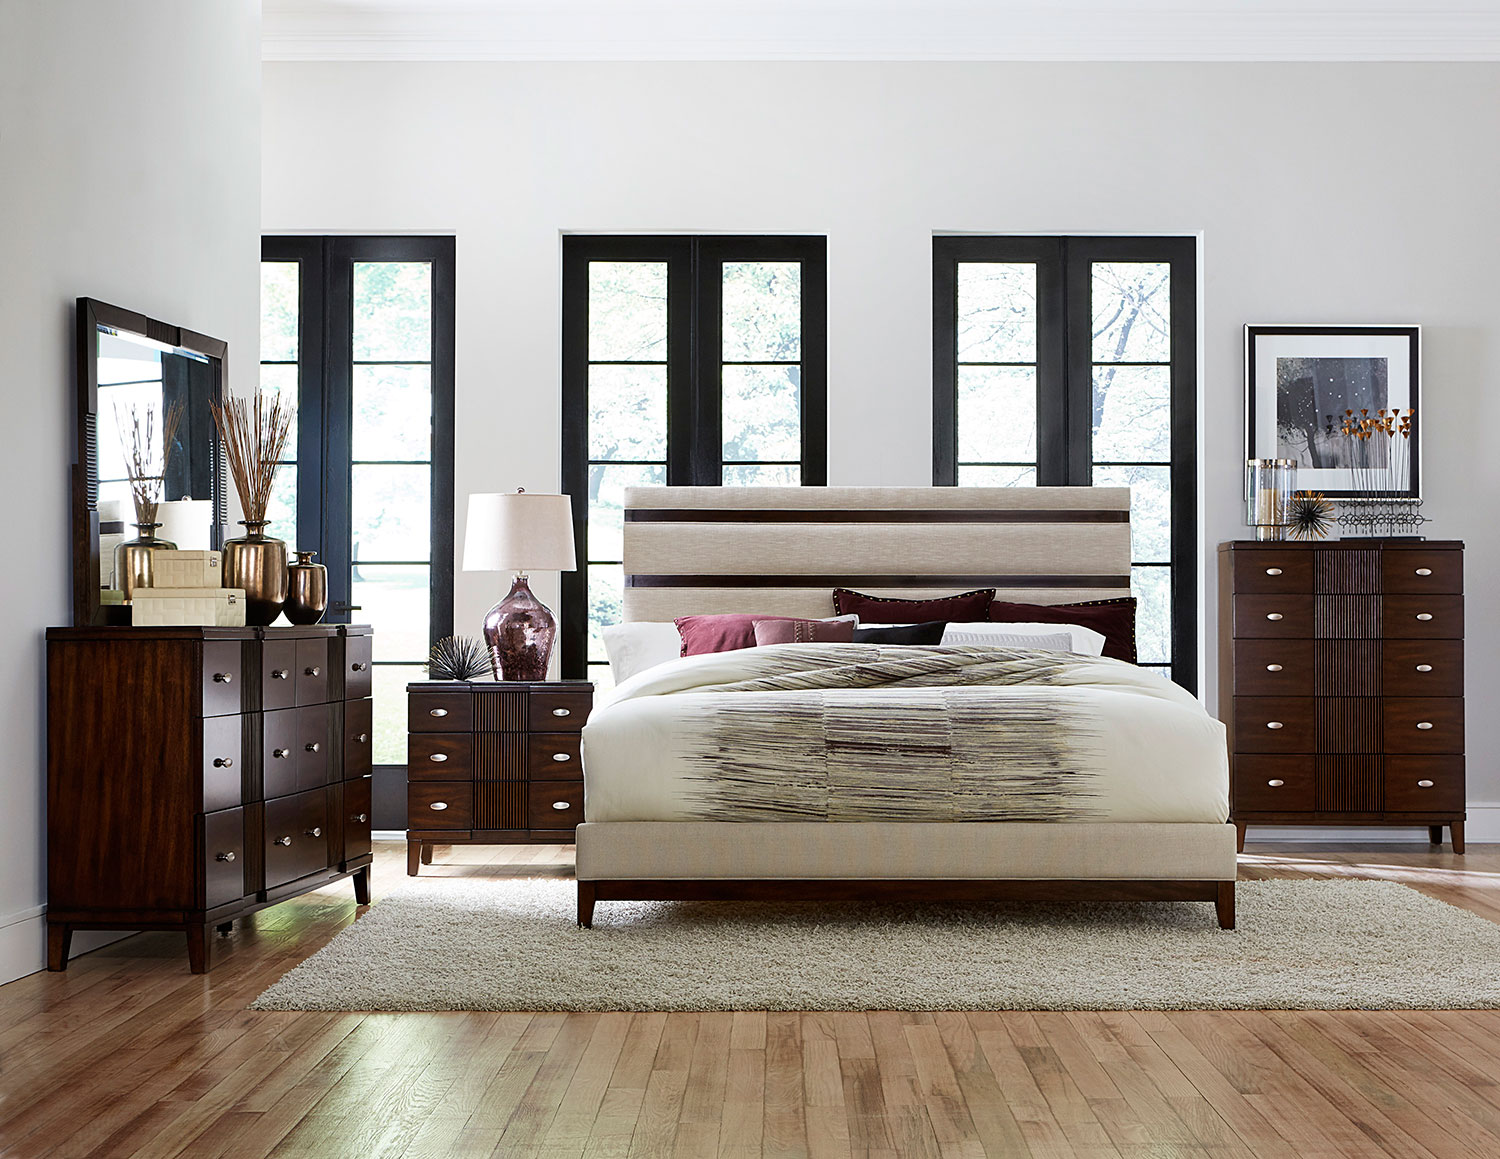 Homelegance Pelmar Upholstered Bedroom Set - Dark Walnut